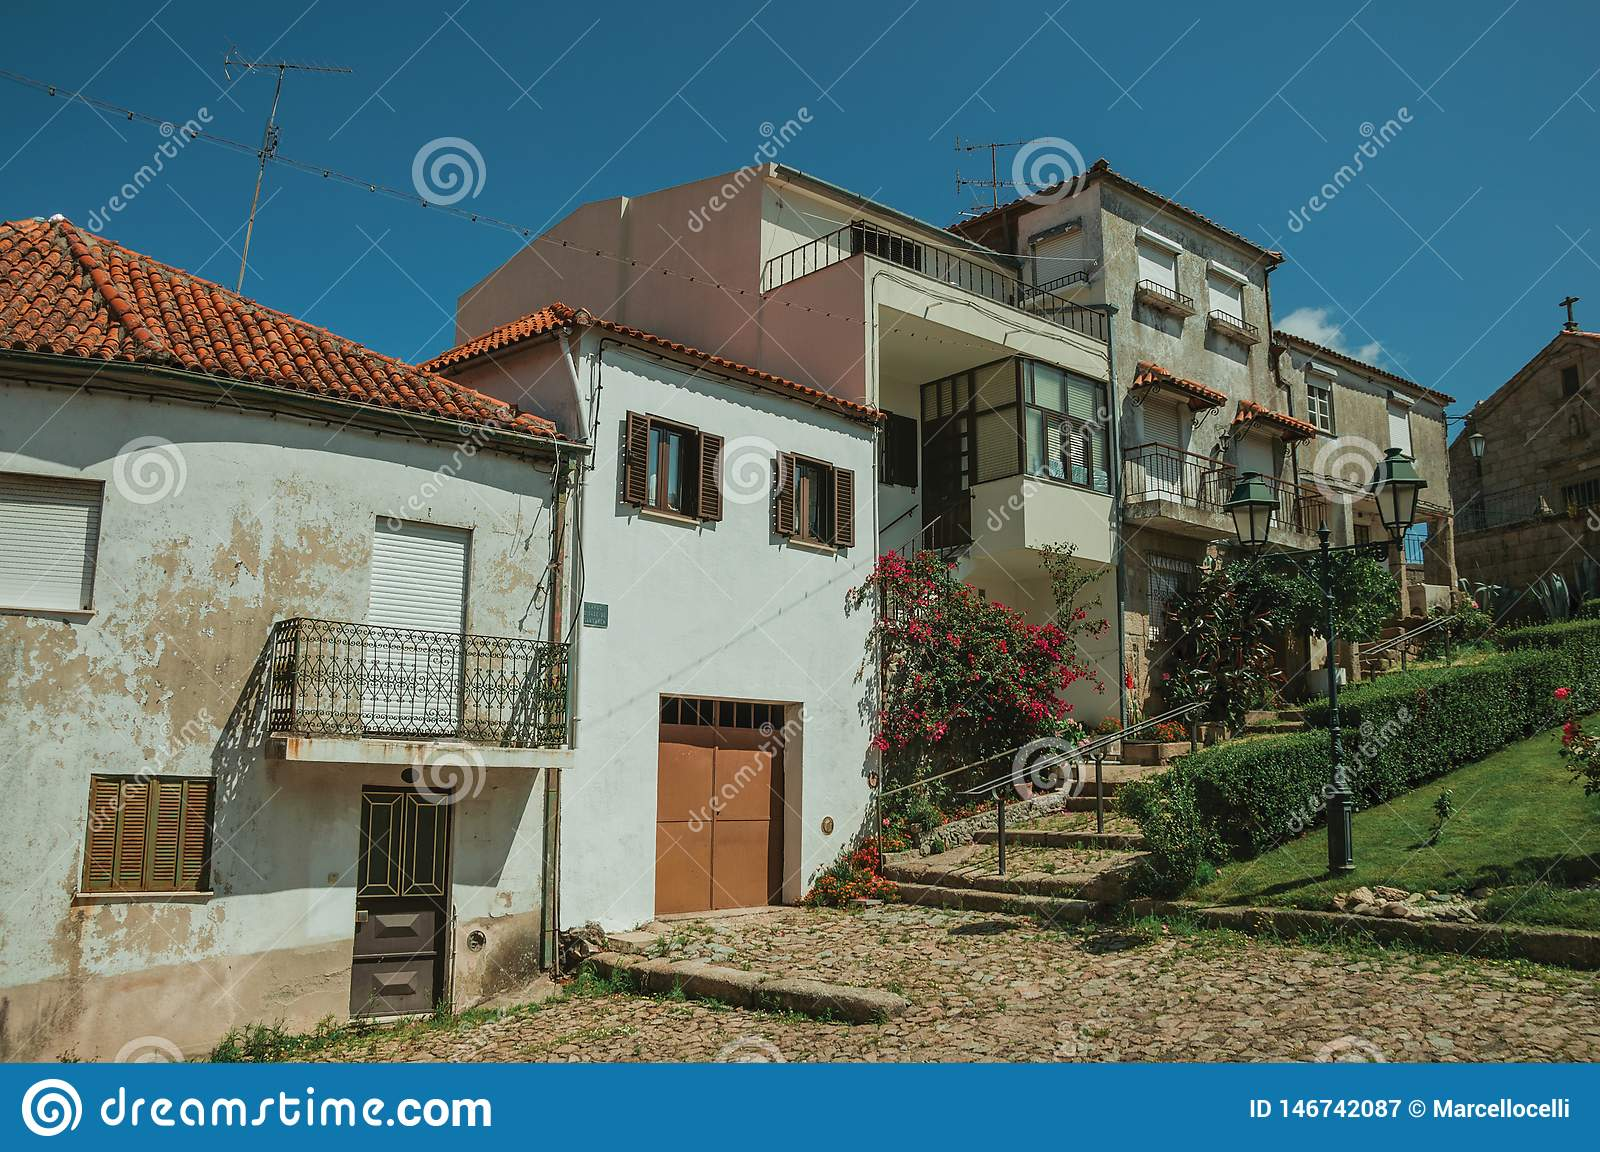 Old houses in small square on slope with steps